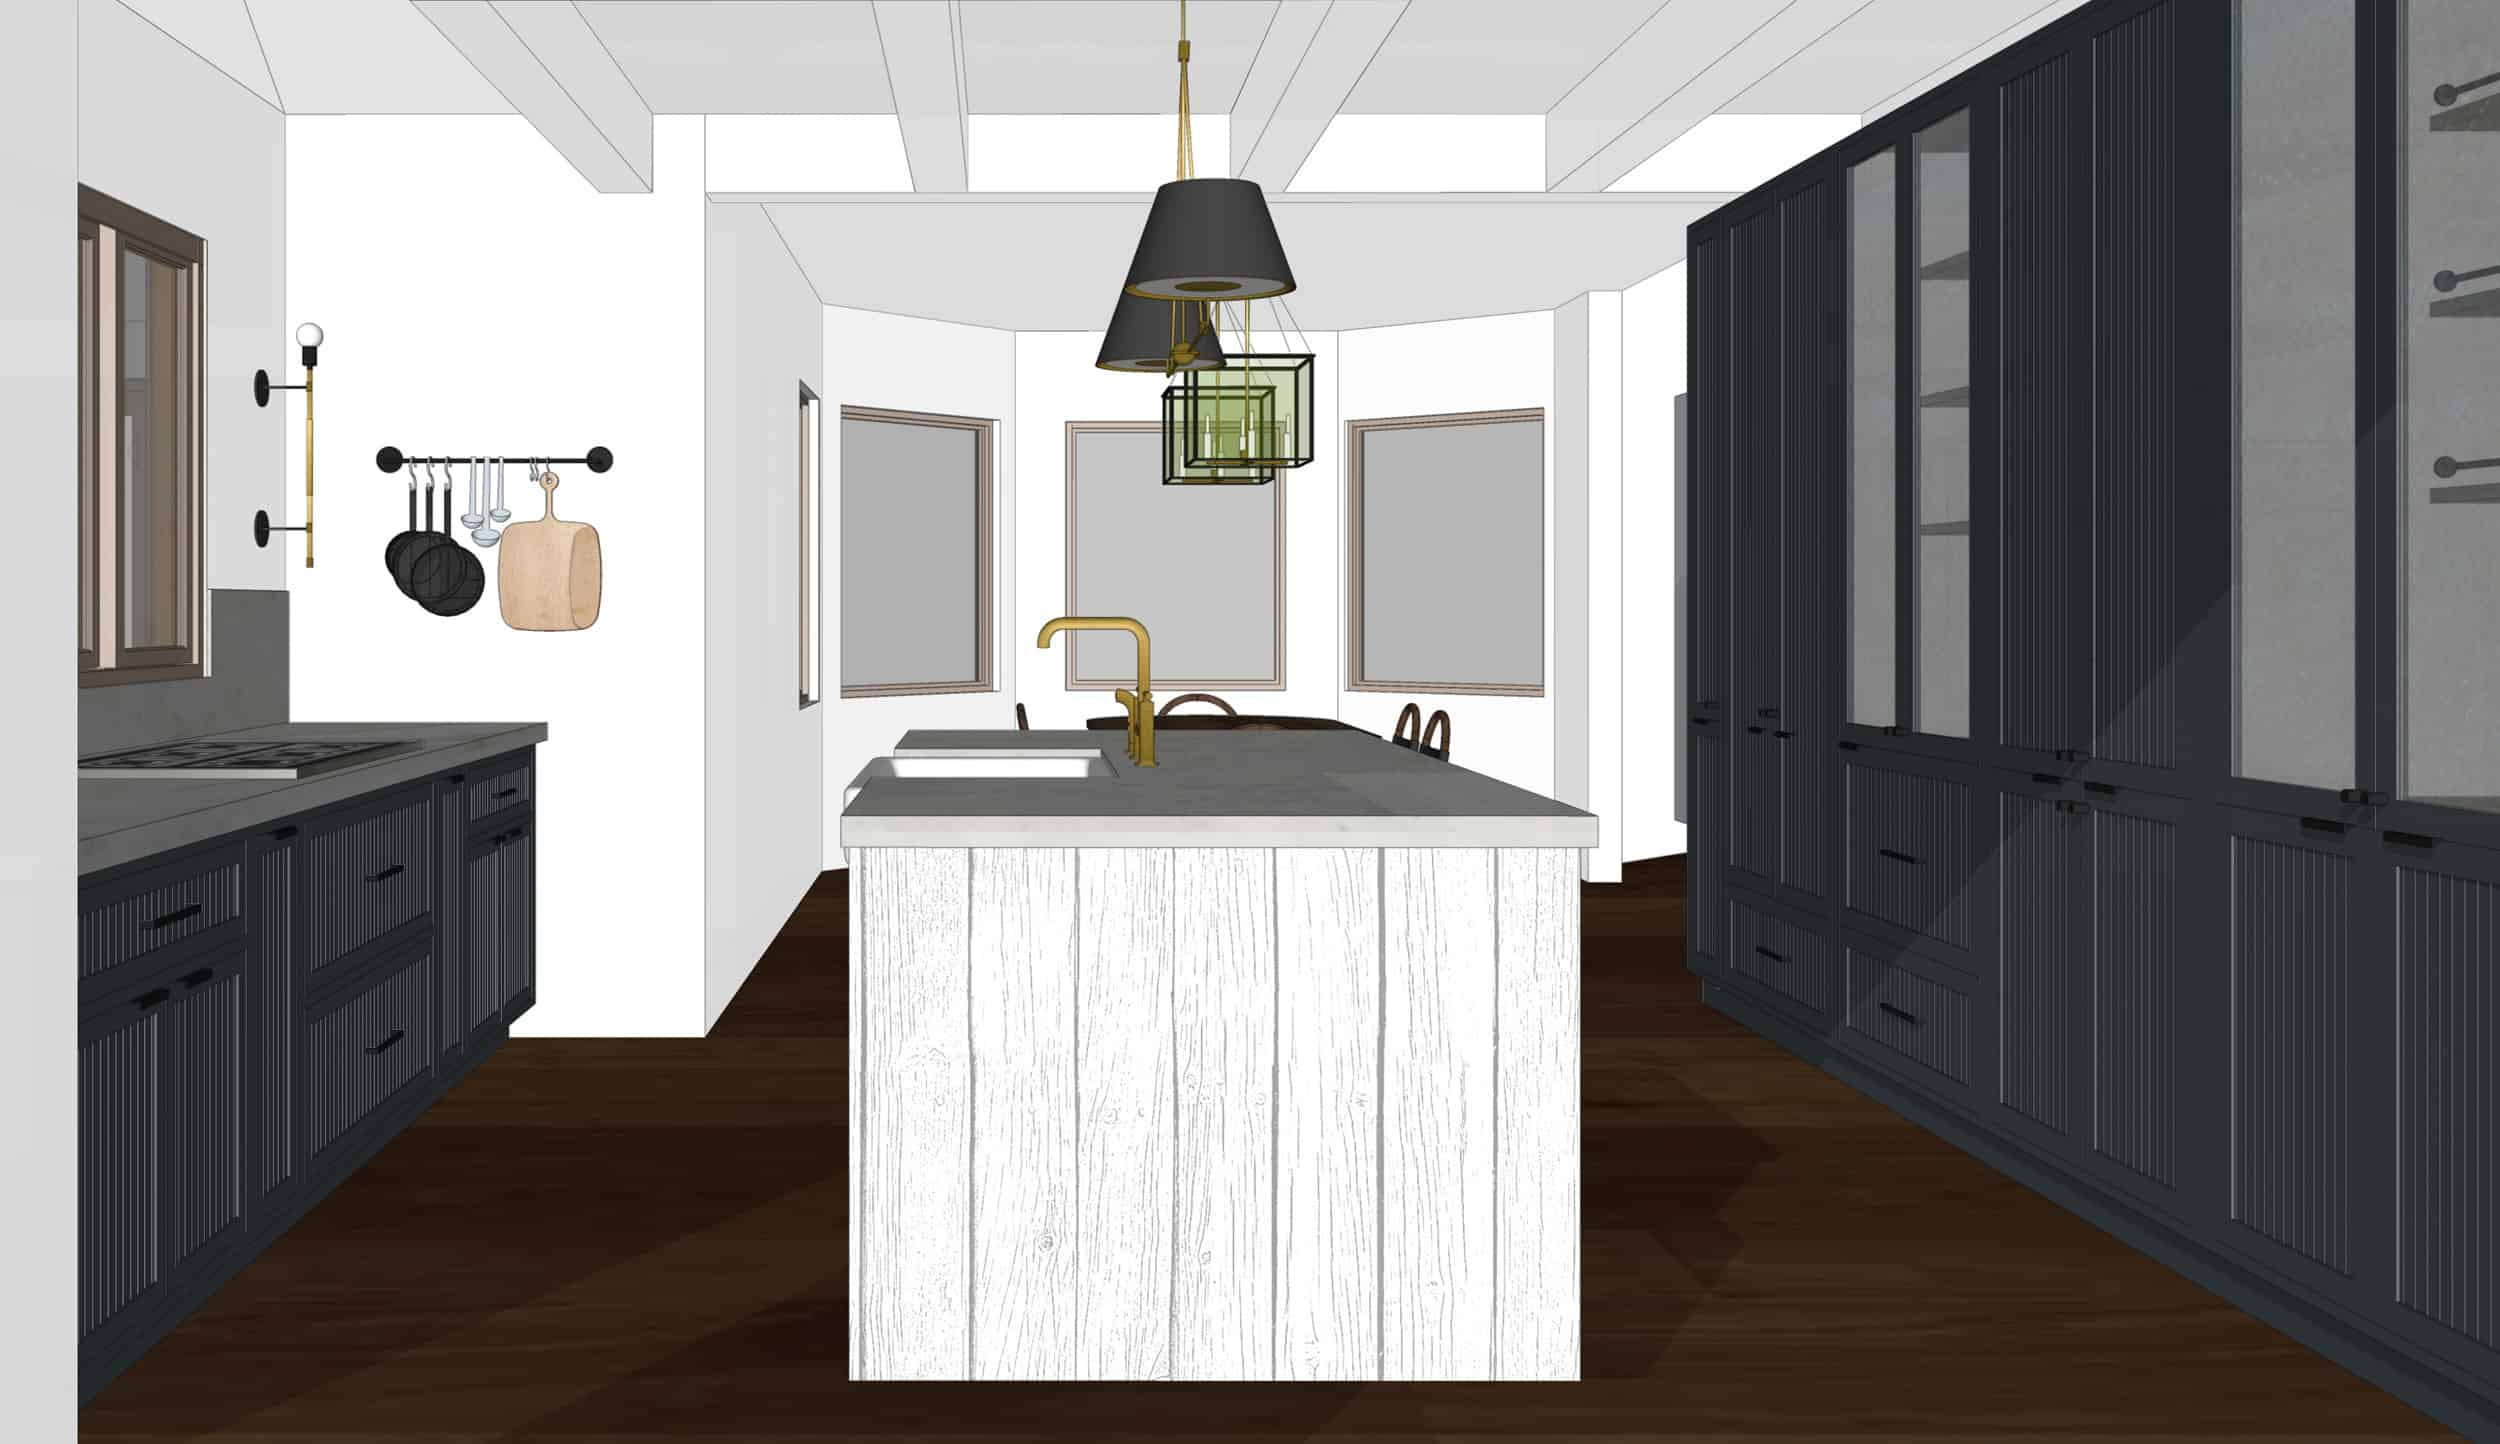 Emily Henderson Mountain Fixer Upper I Design You Decide Kitchen Render 02 6.20.181